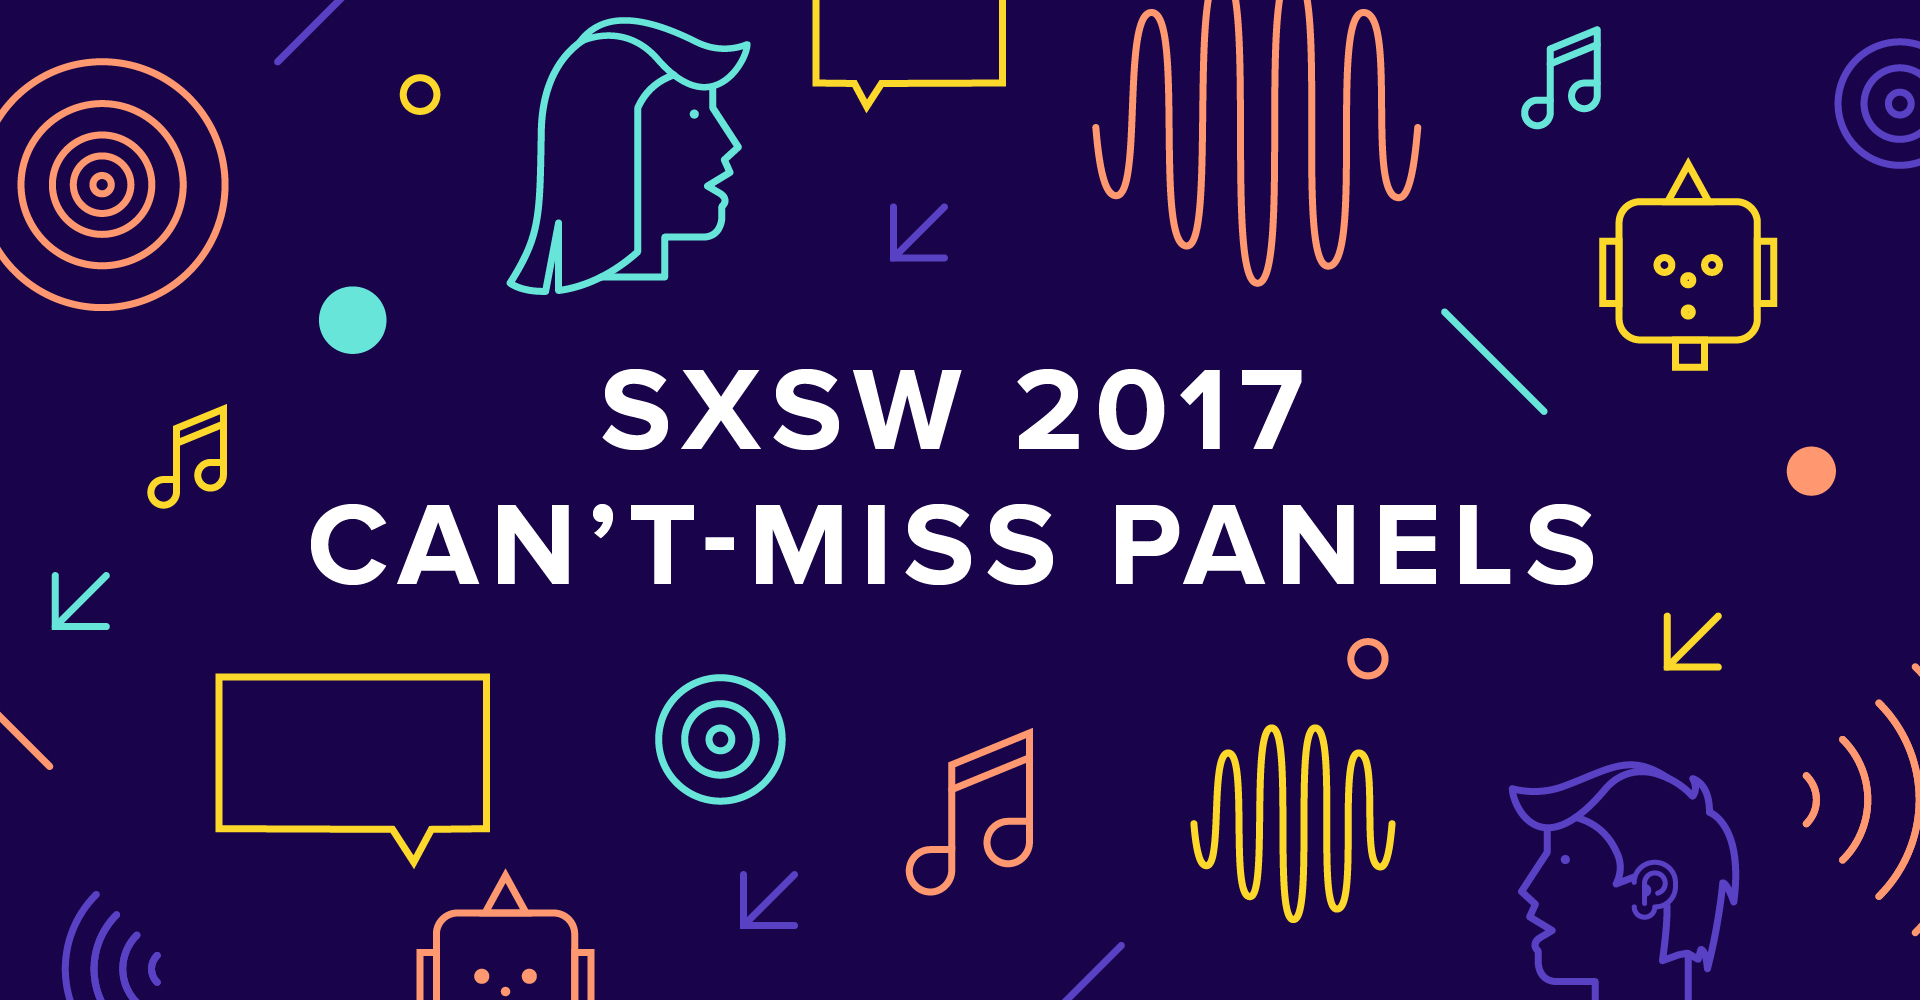 Favorite Panels for SXSW